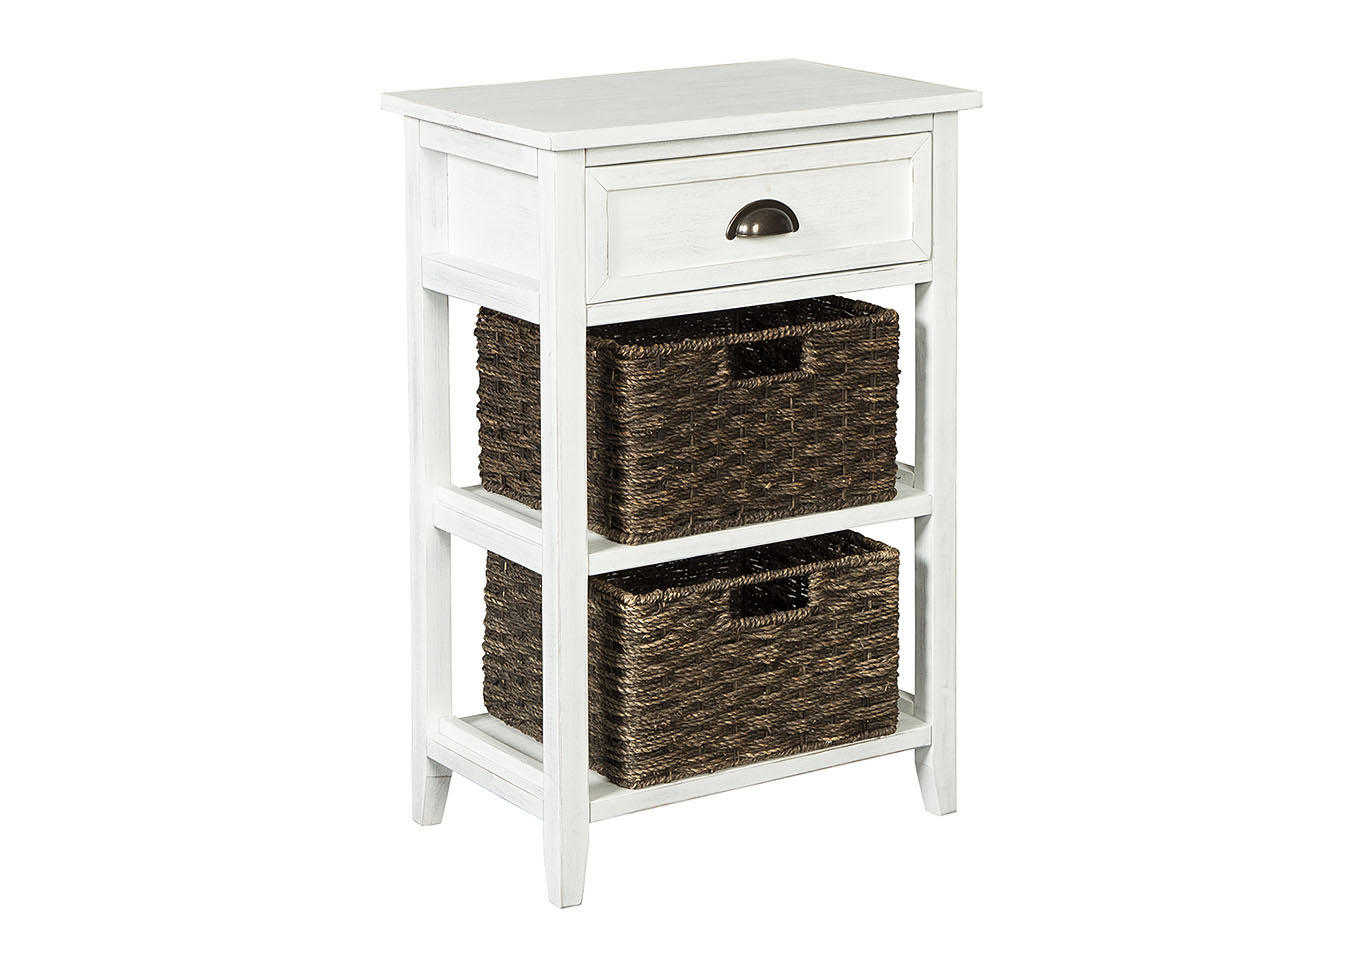 dream decor furniture springfield oslember white accent table chest signature design ashley grey patterned armchair bath and beyond registry login drawer serving tray antique